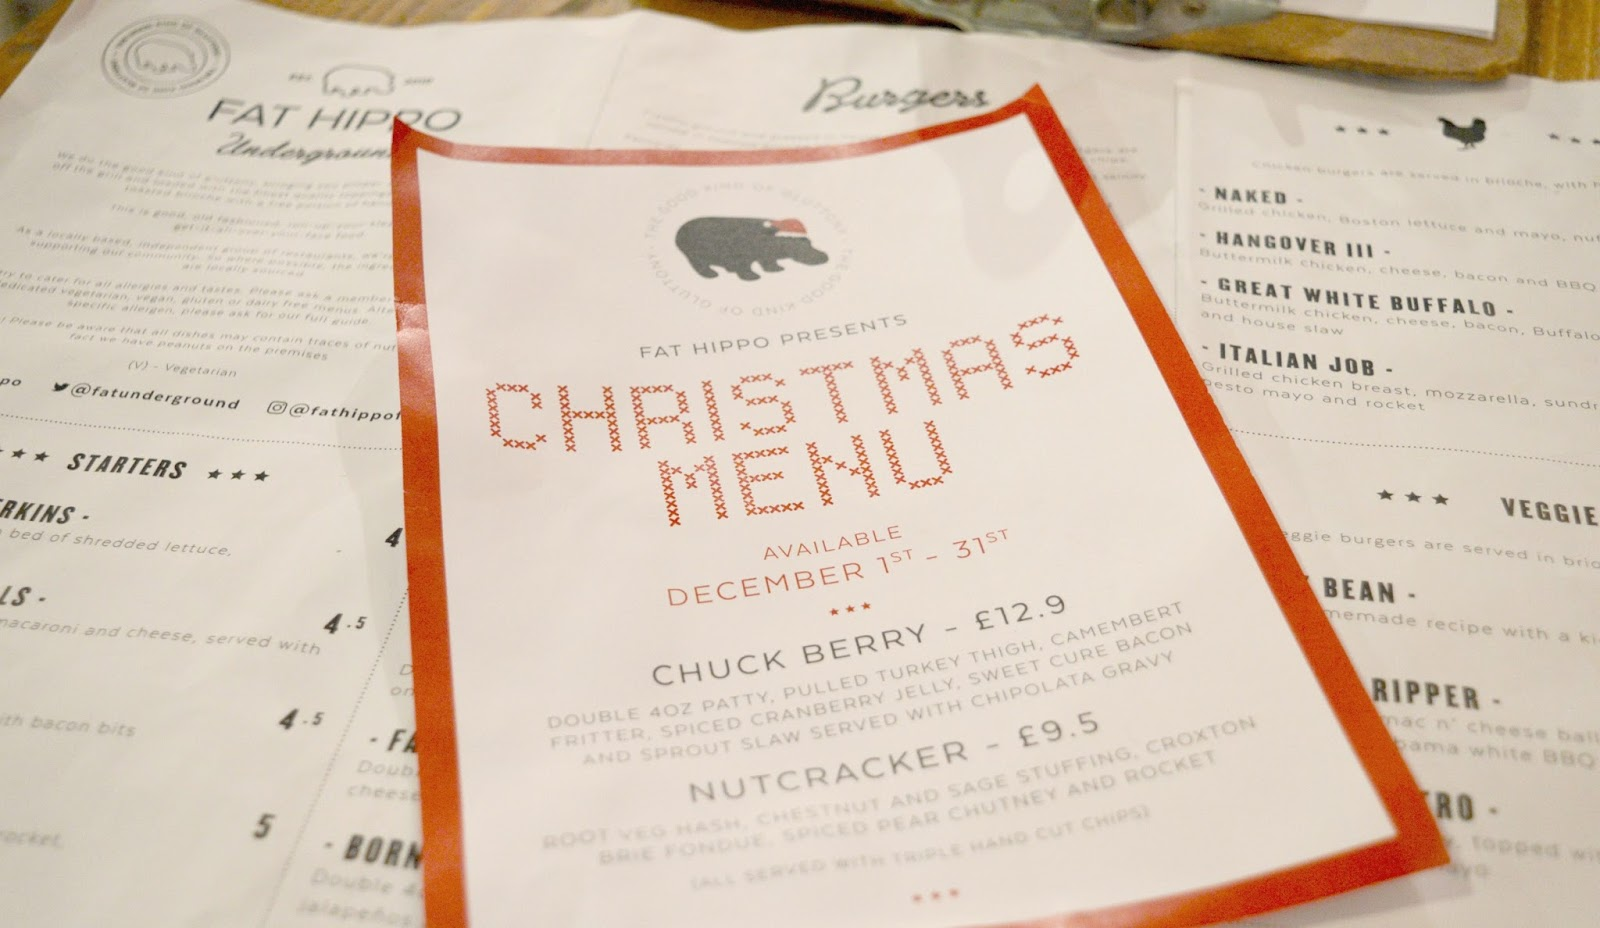 Fat Hippo Christmas Burger Menu